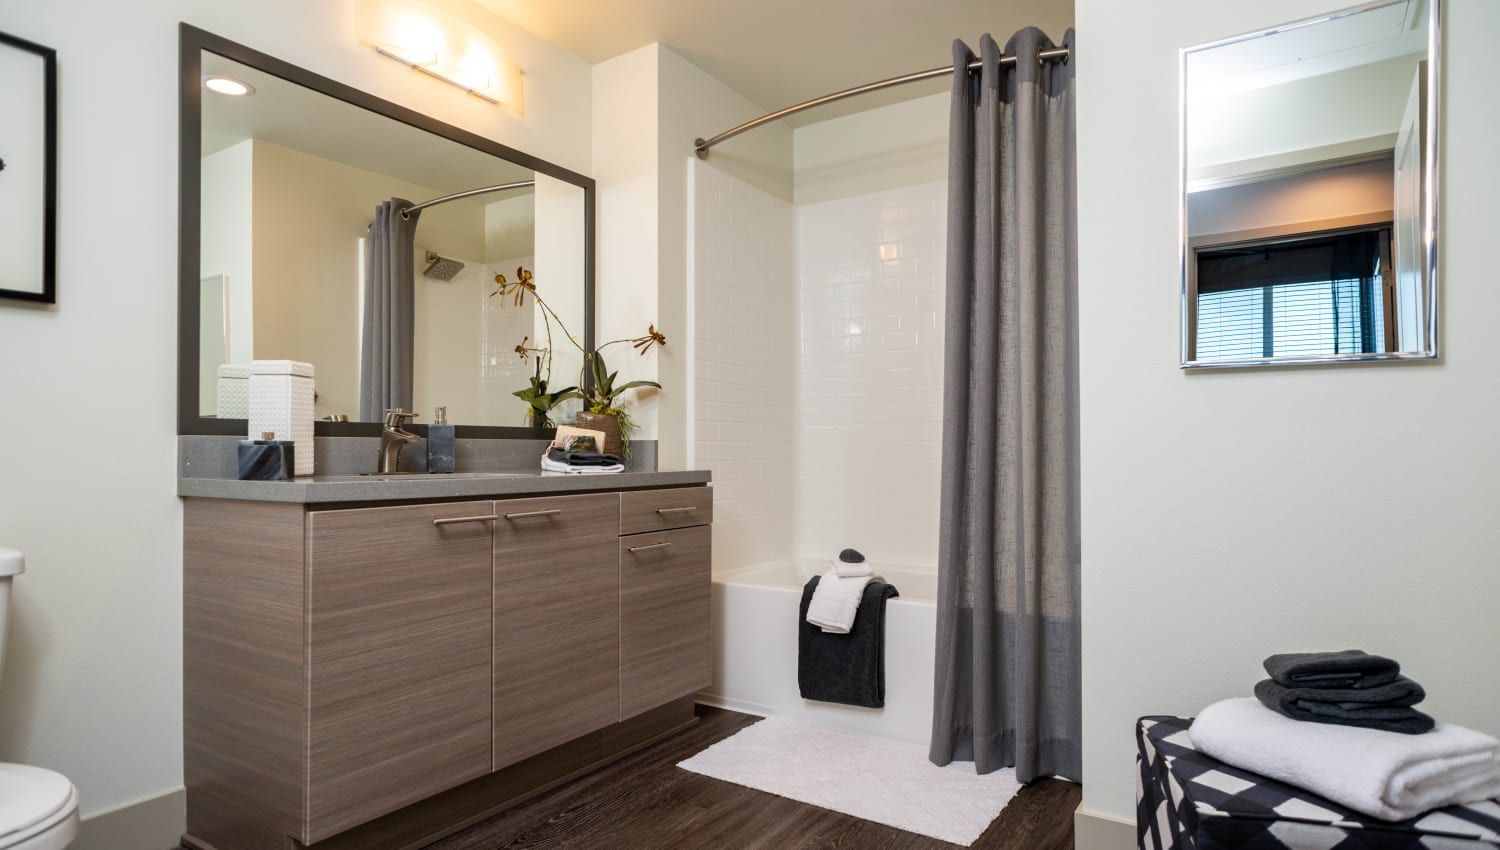 Tiled shower and custom wood cabinetry in the master bathroom of a model home at Fusion Apartments in Irvine, California